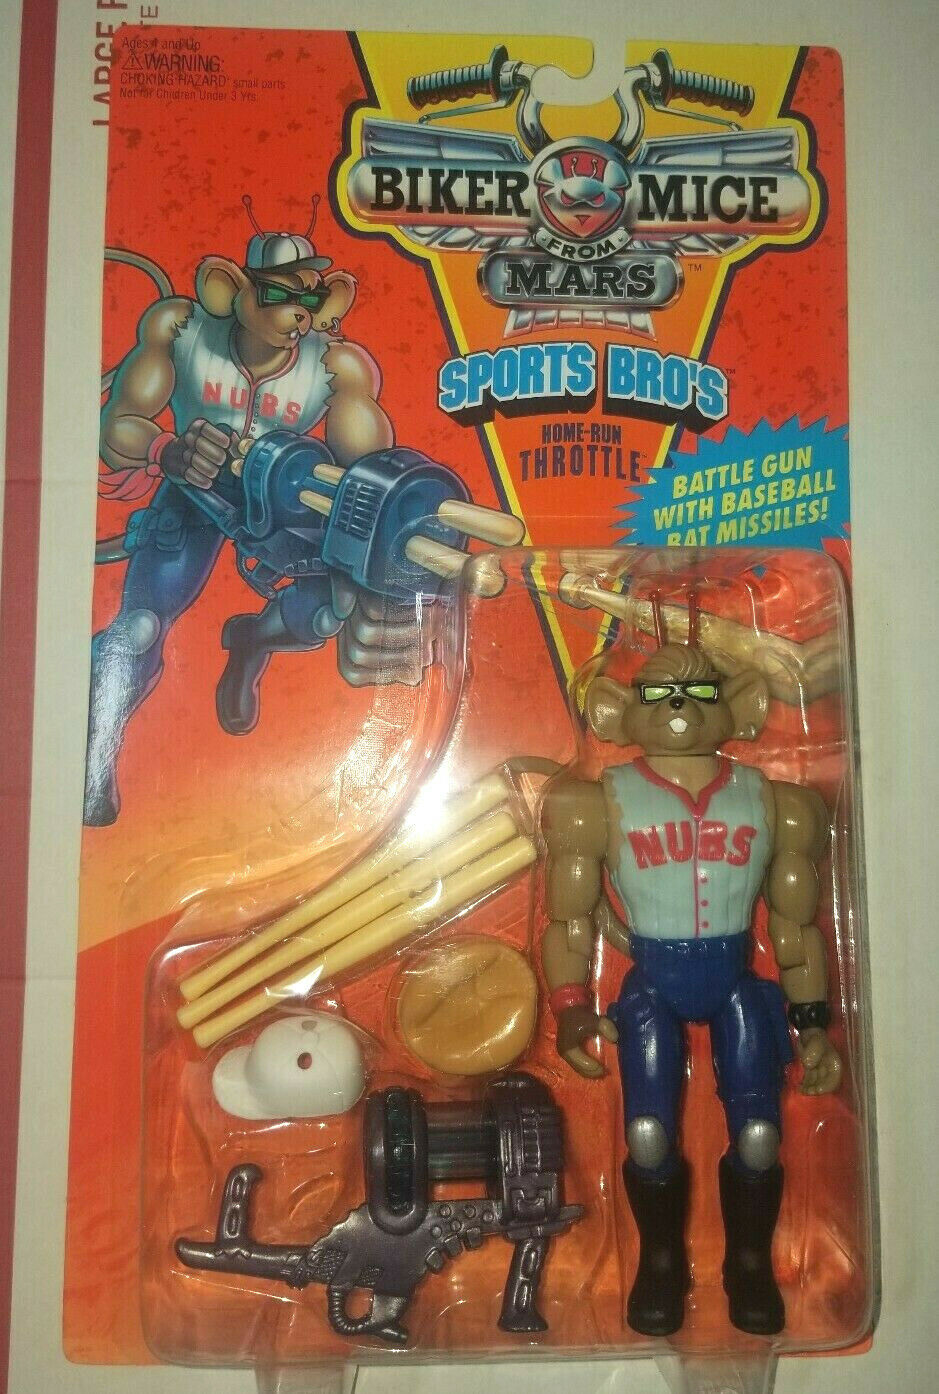 1994 Biker Mice From Mars Home Run Throttle baseball Action Figure motorcycle